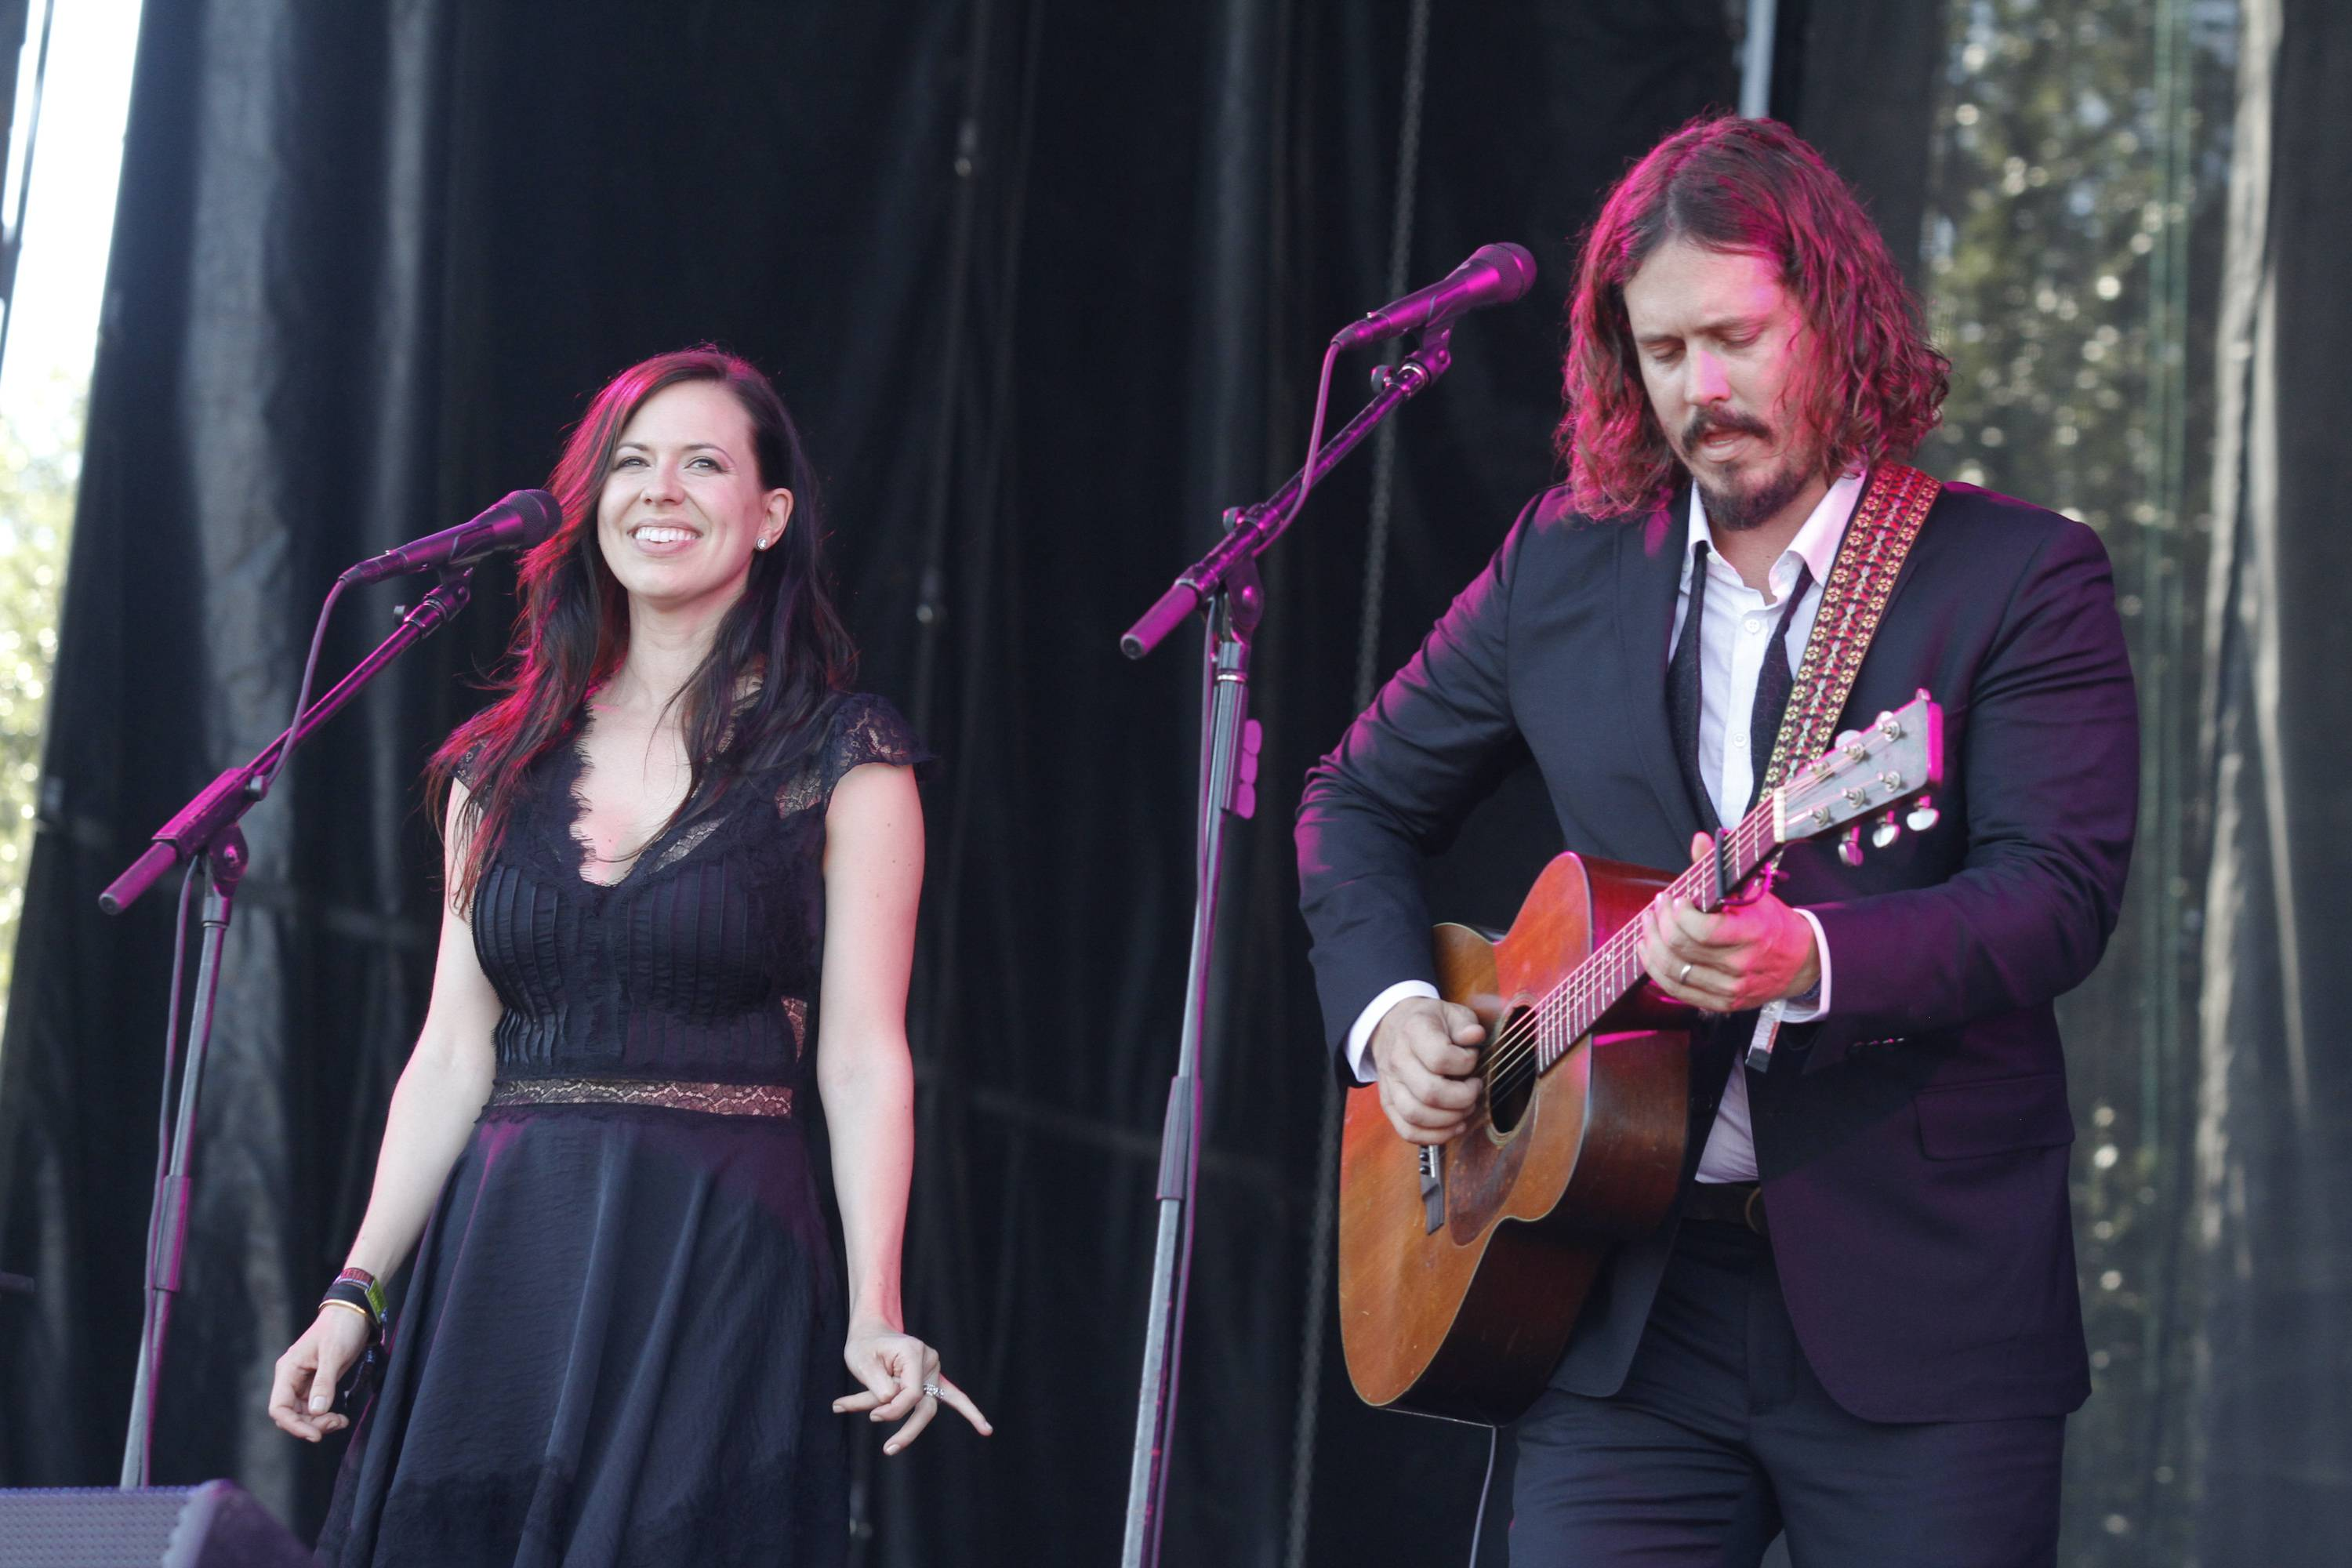 Joy Williams and John Paul White issued a statement on their website Tuesday announcing the decision to split, which comes nearly two years after the duo pulled out of a world tour over irreconcilable differences.